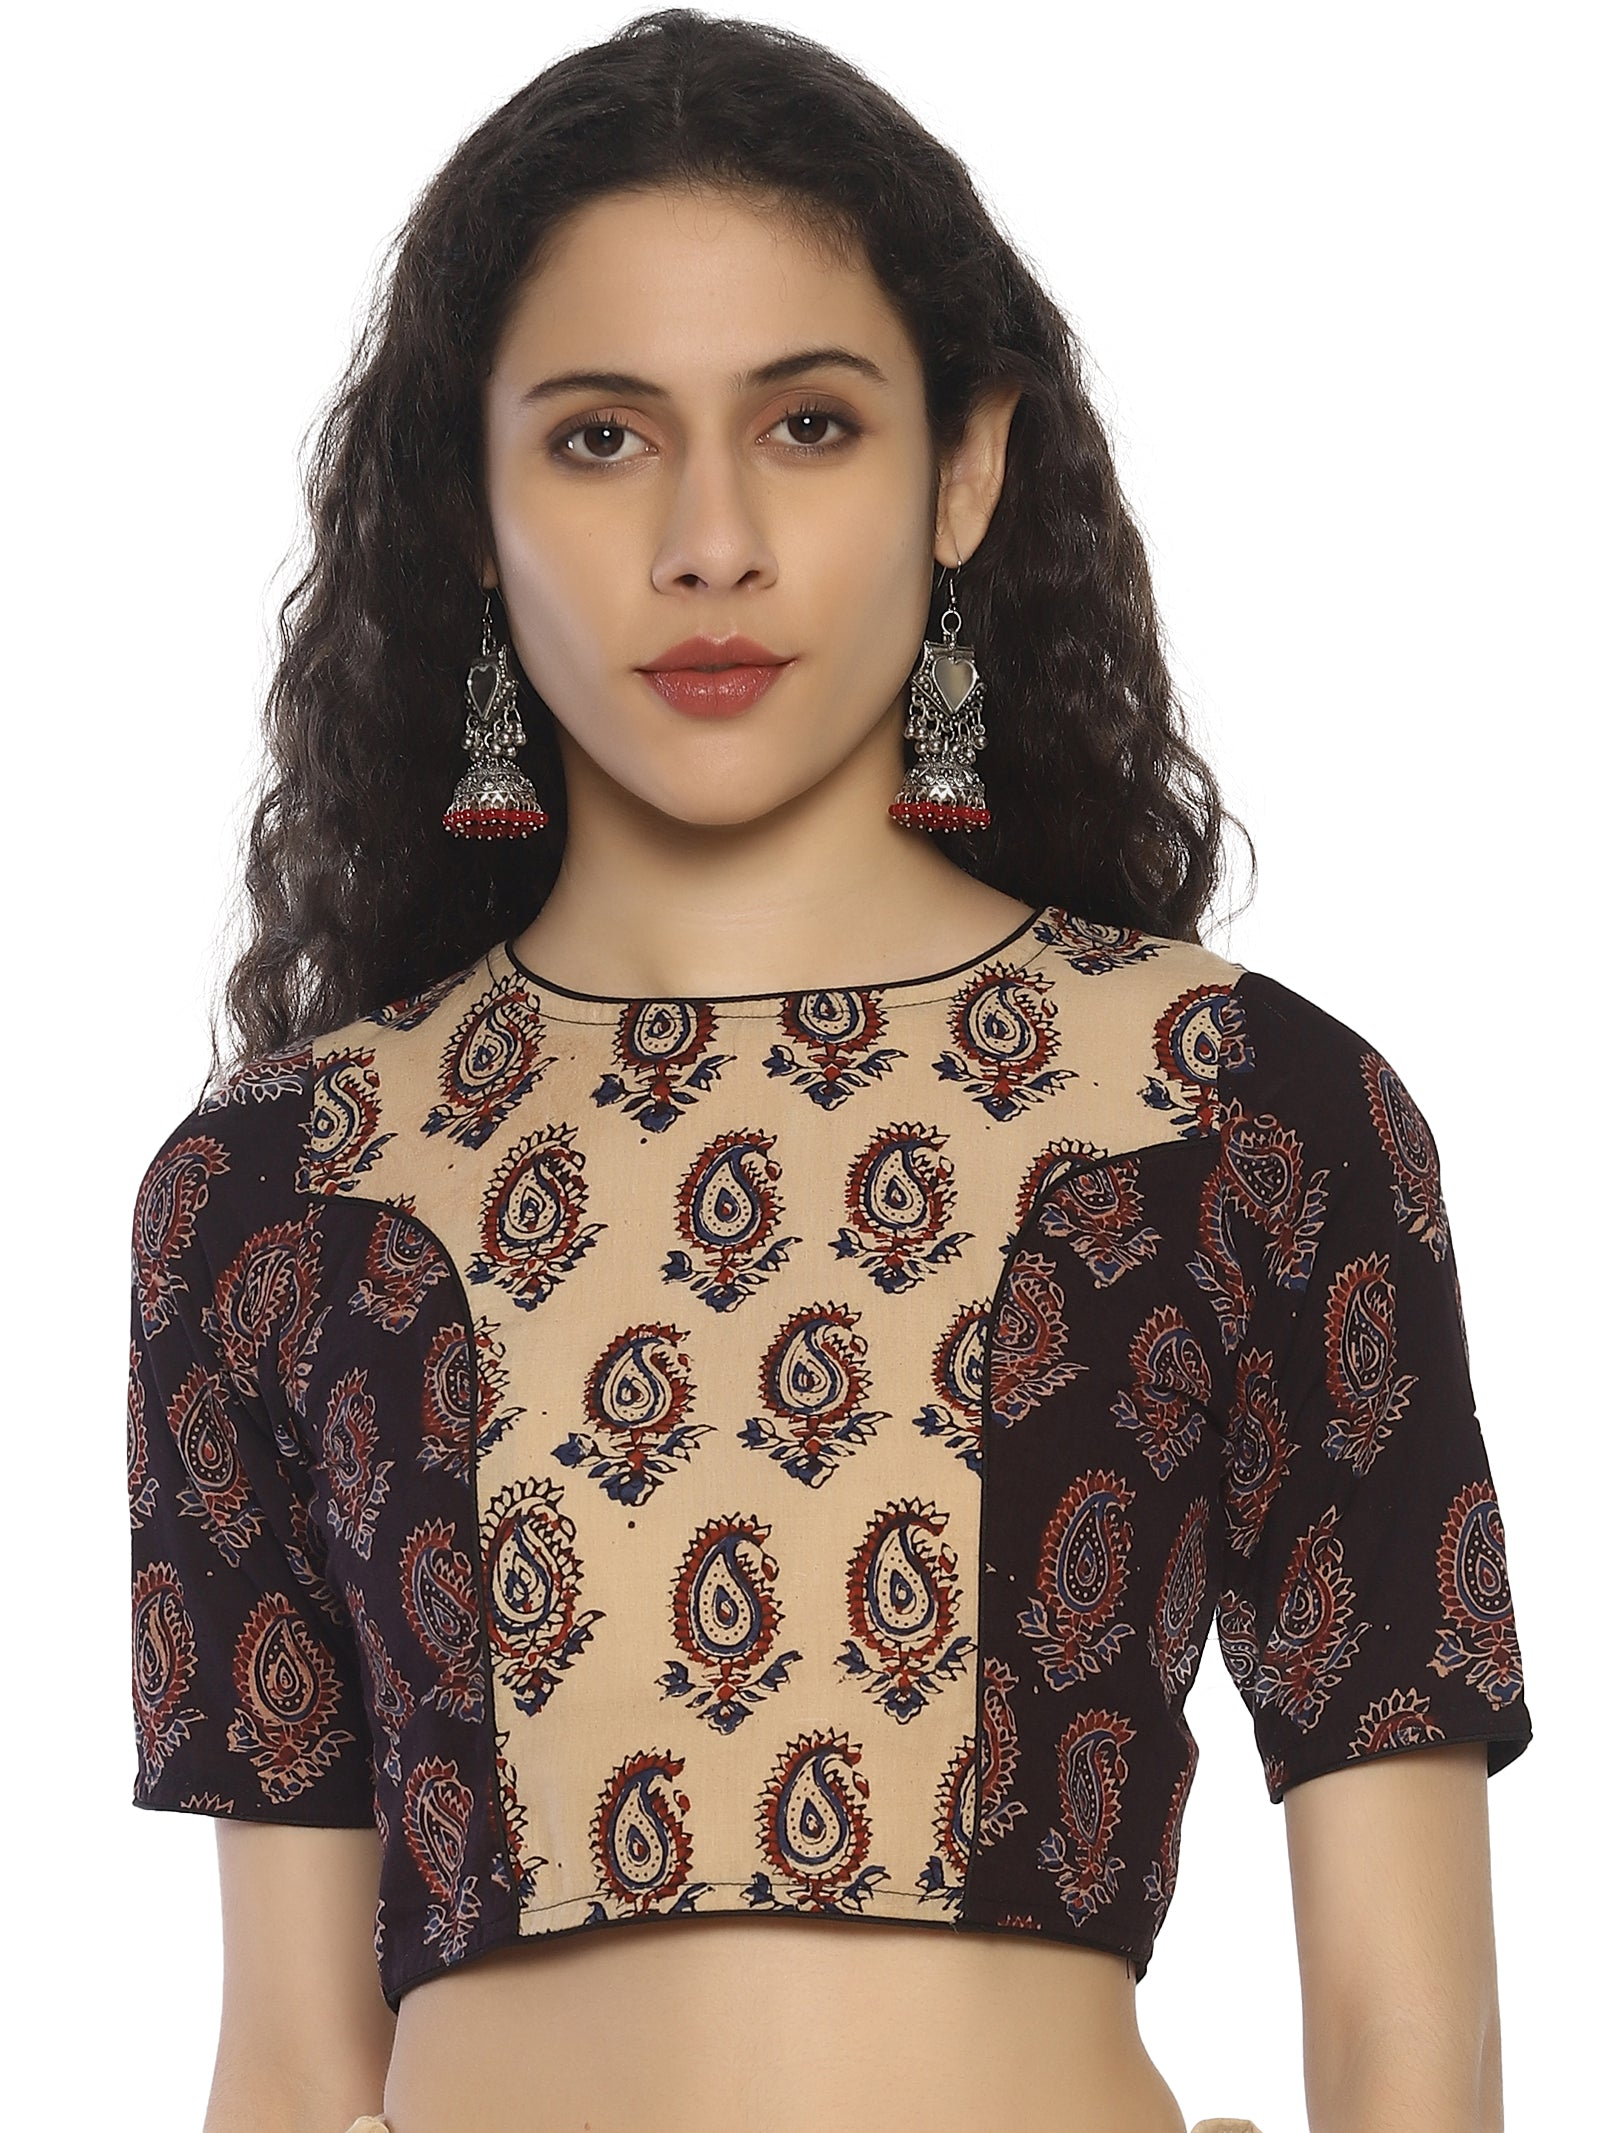 Beige and Dark Brown Ajrakh Hand Block Printed Pure Cotton Blouse